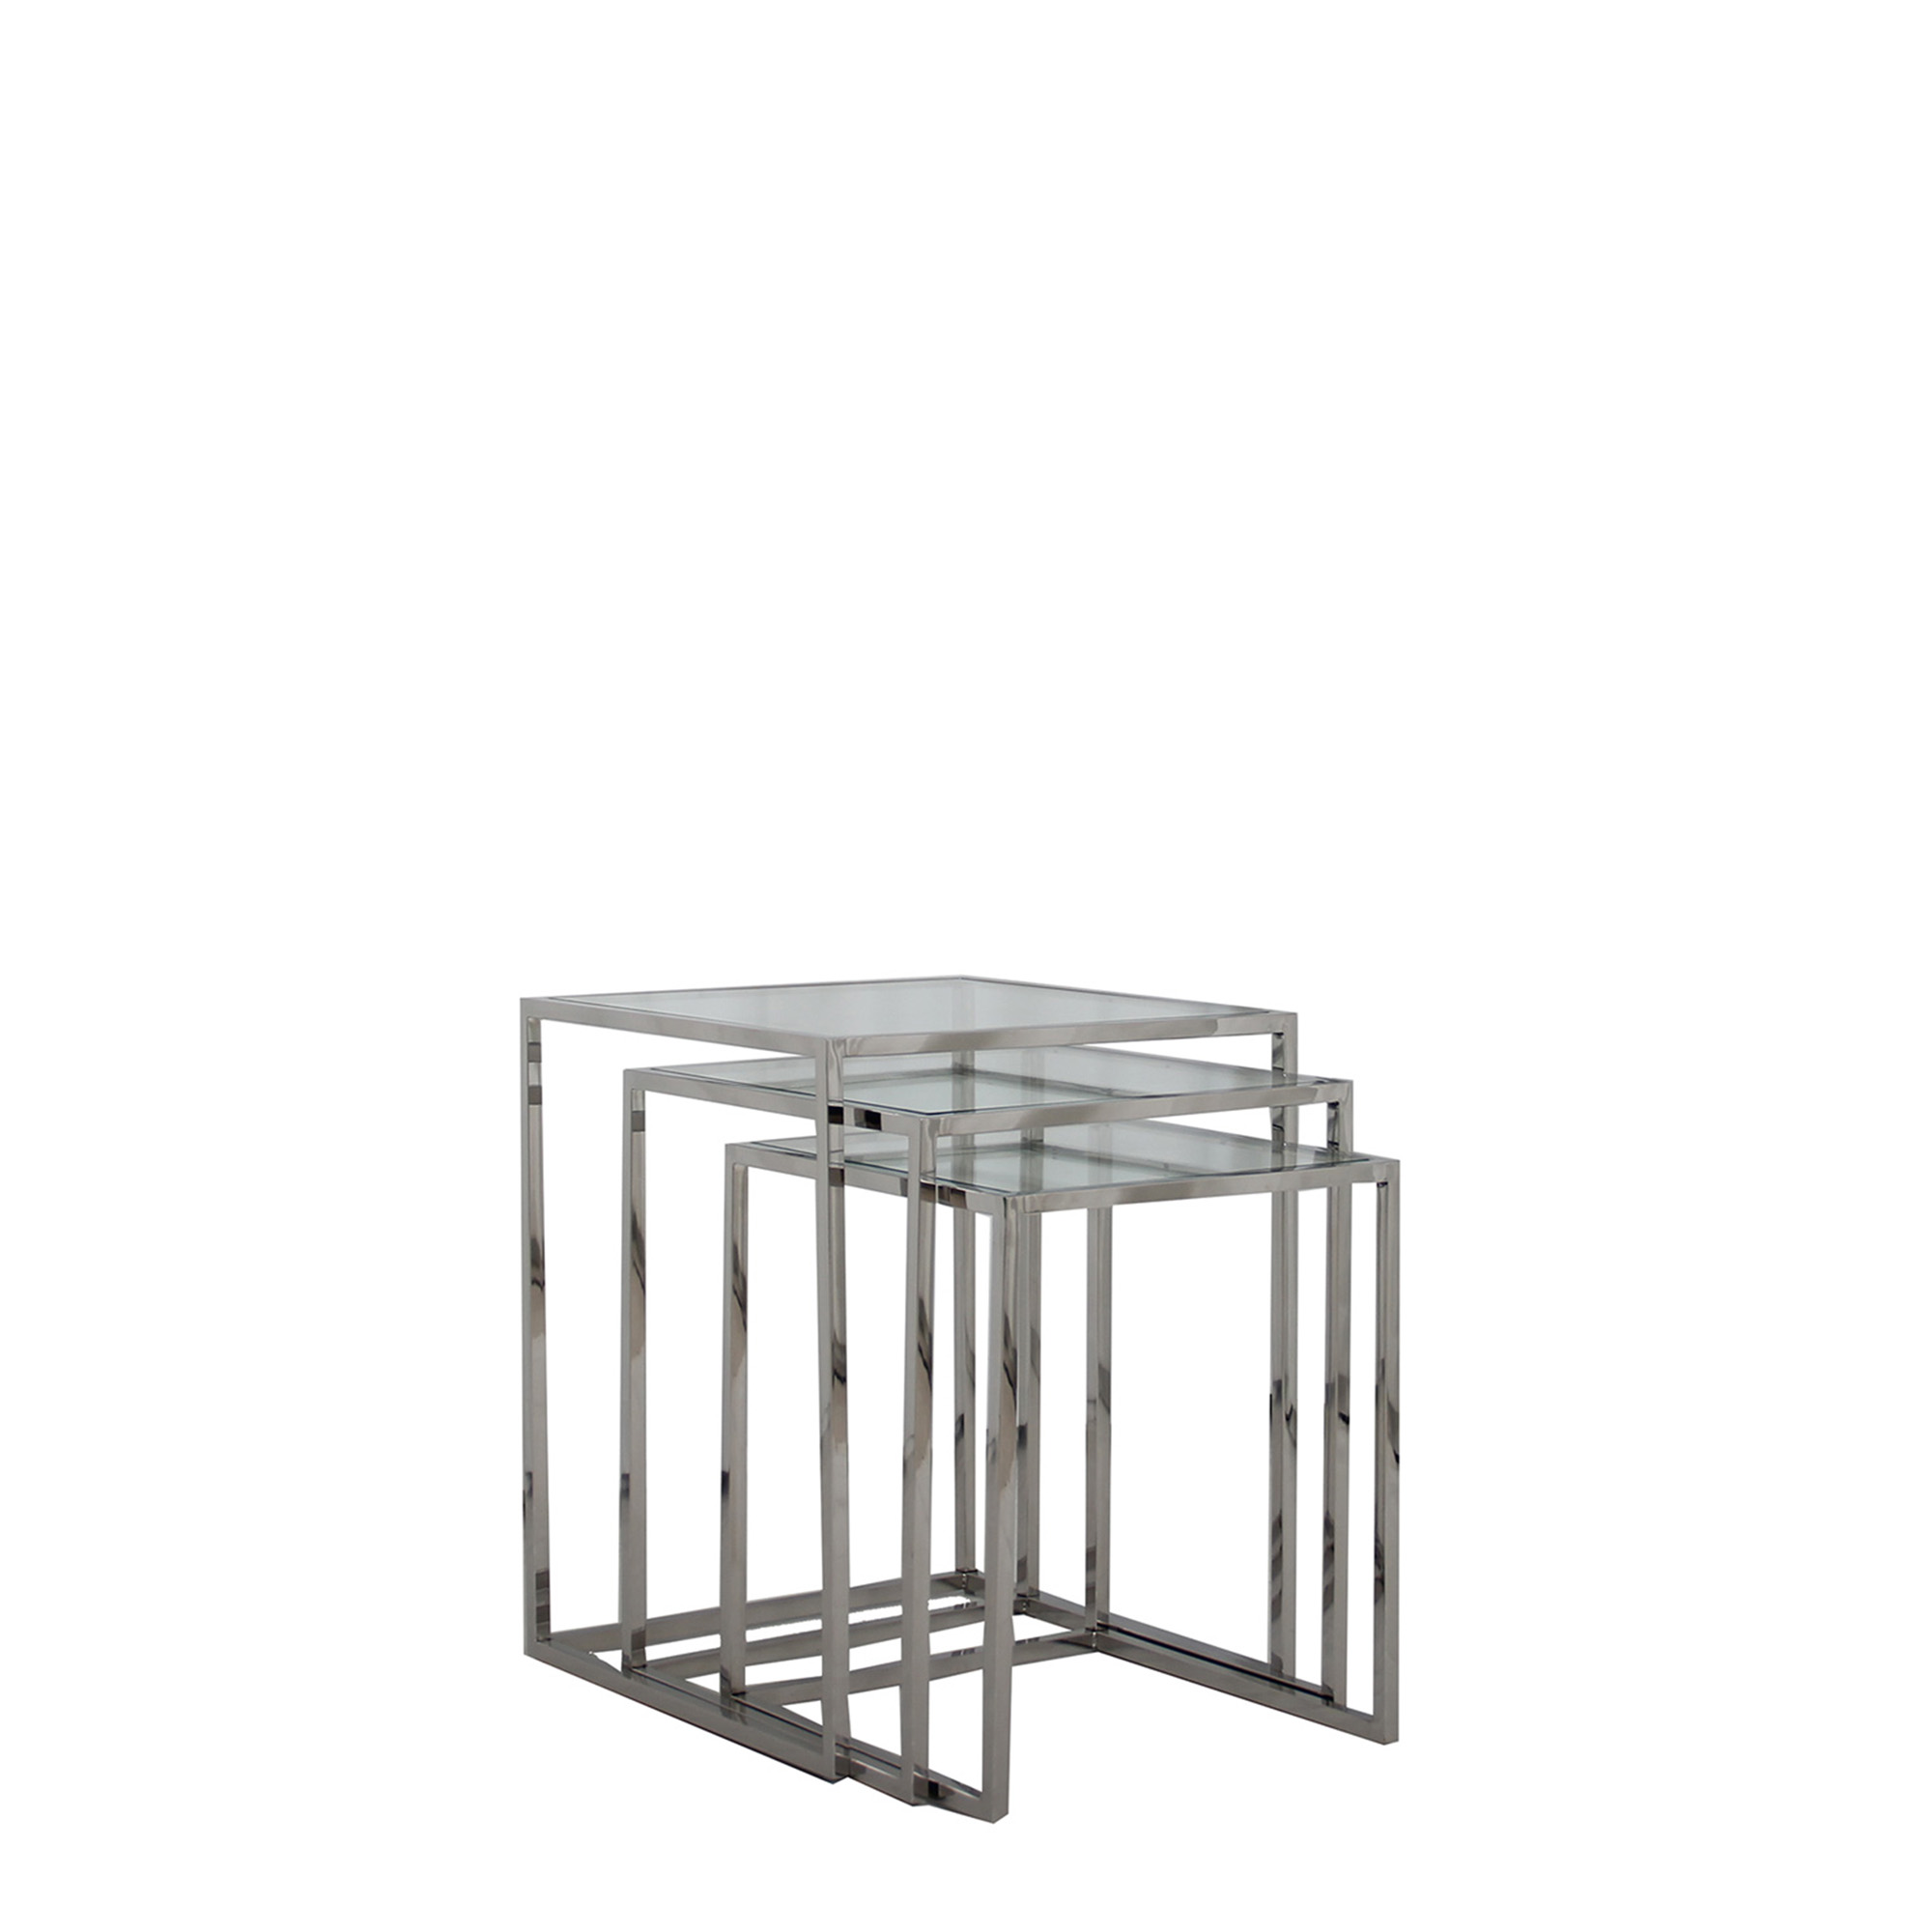 Trento Nest Of Three Tables With Clear Glass Top Stainless Steel Legs Nest Of Tables Fishpools